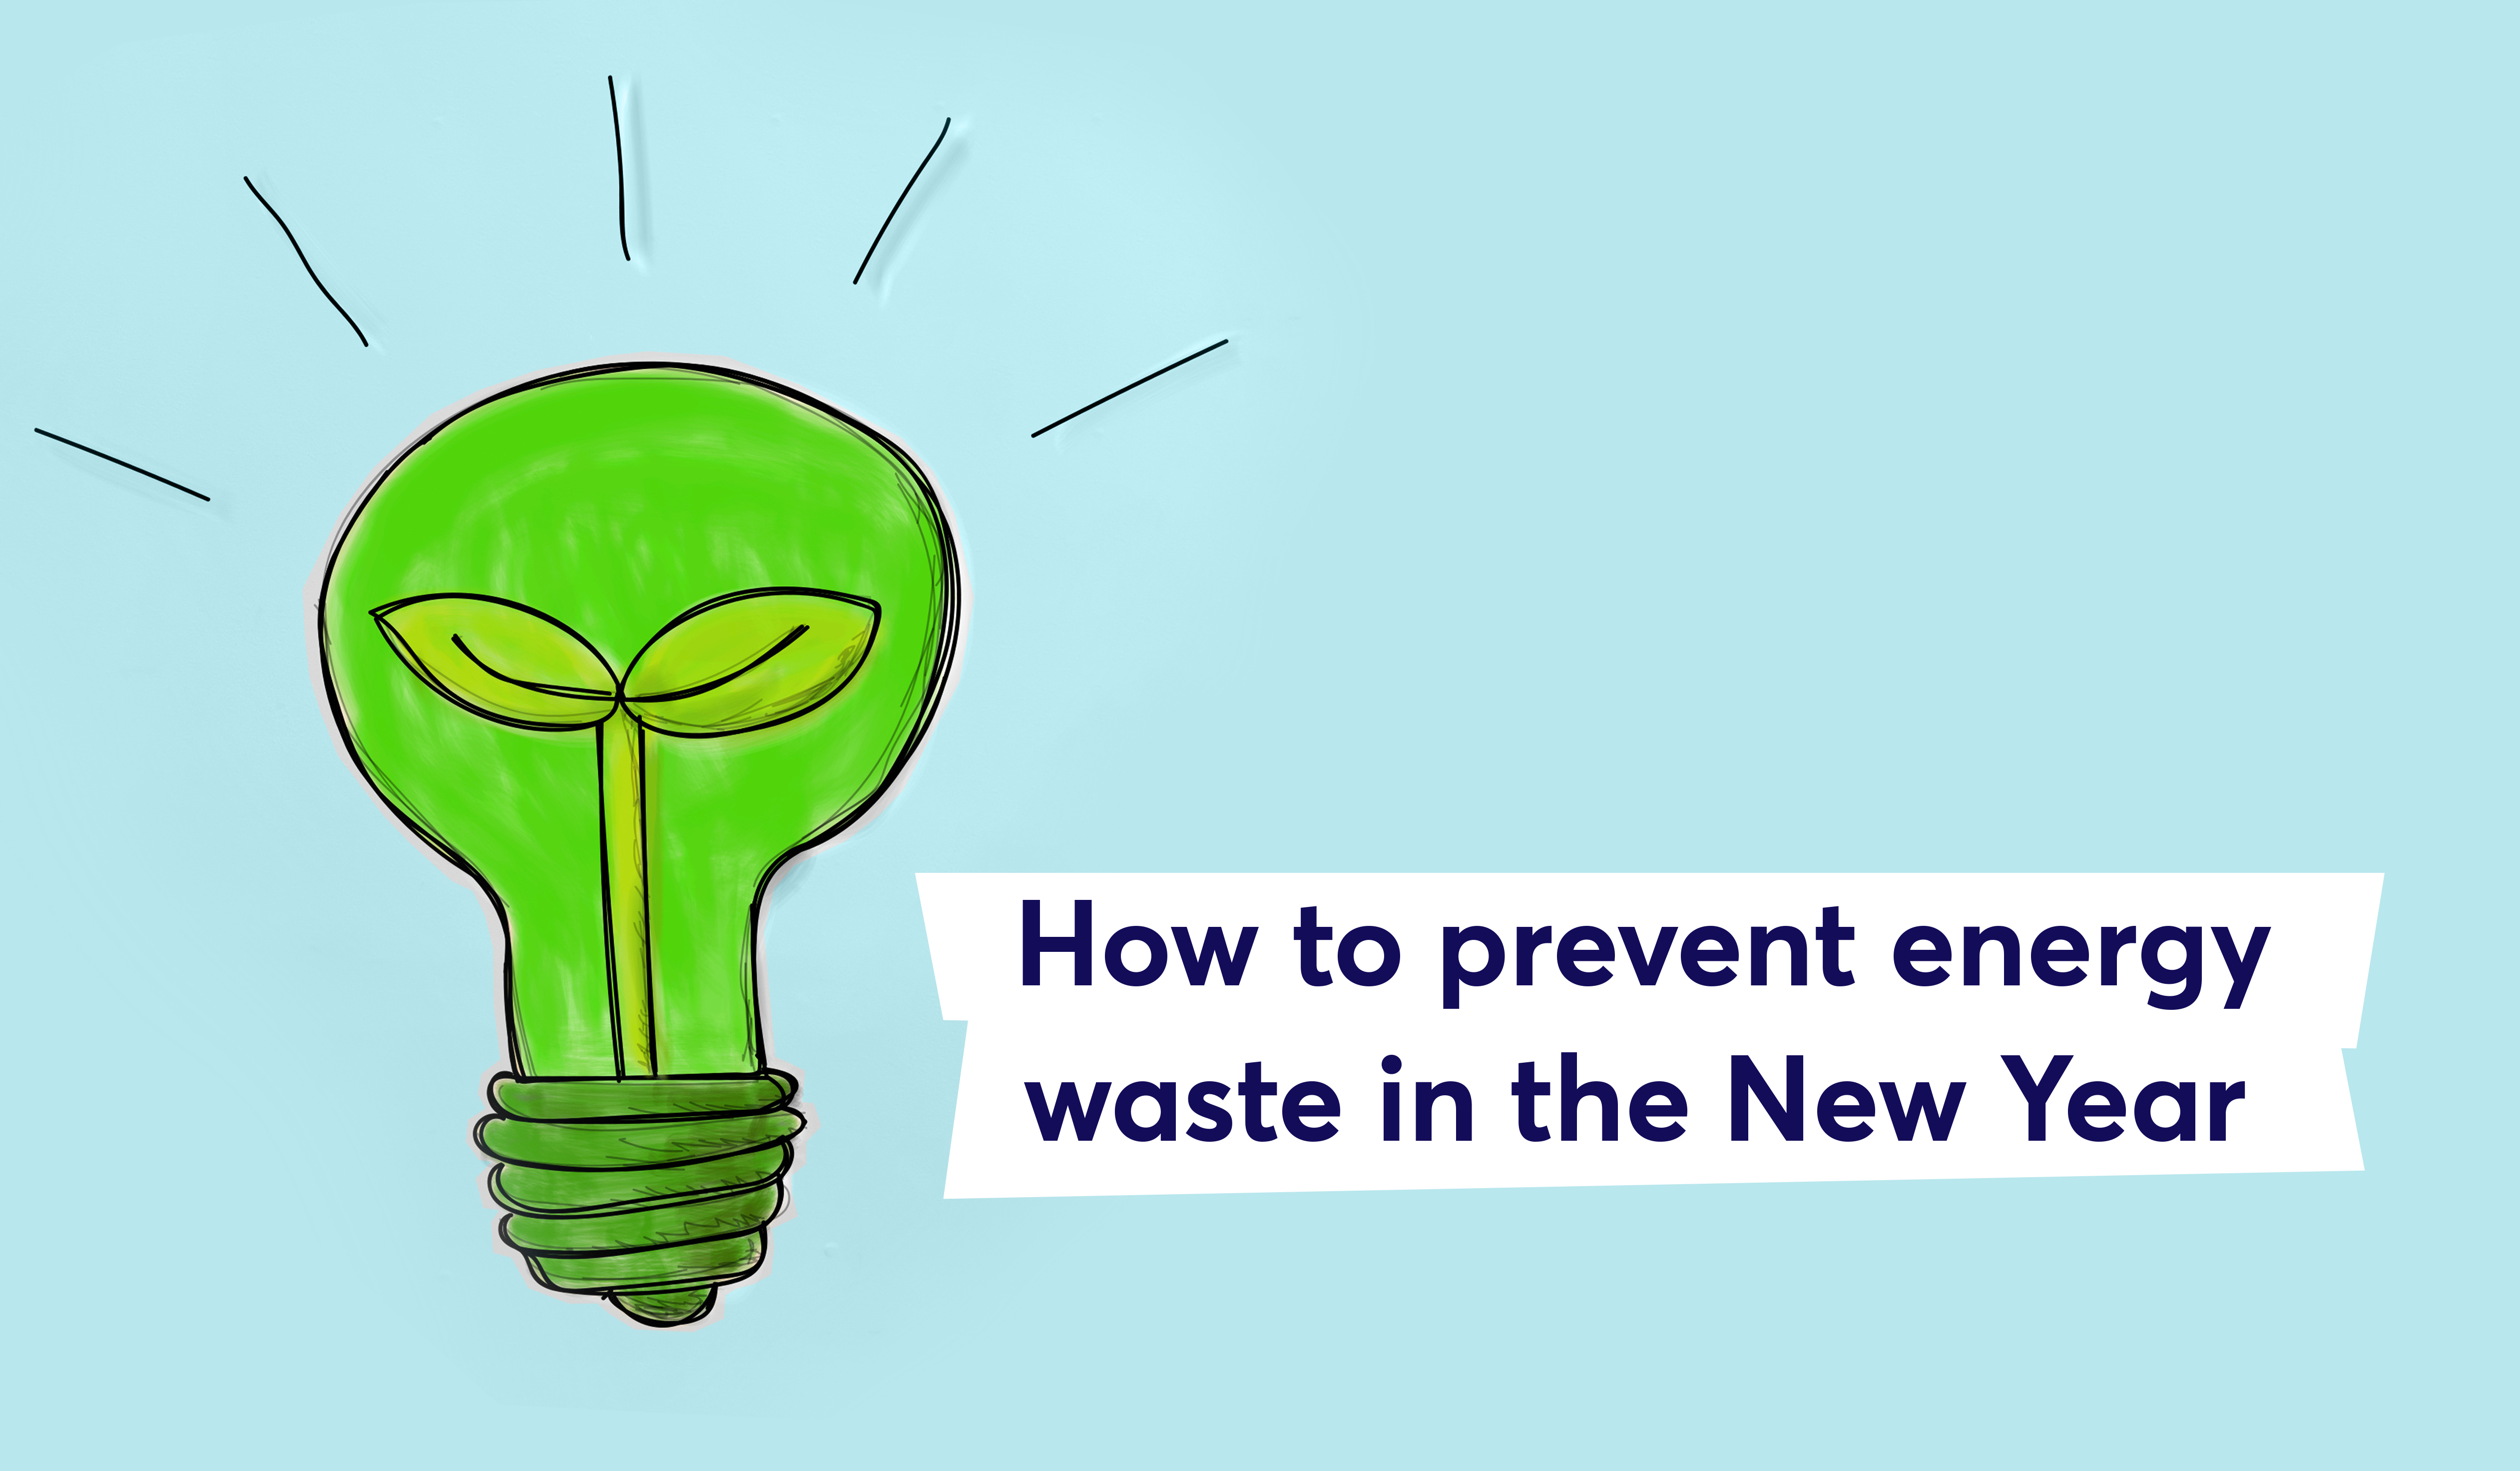 How to prevent energy waste in the New Year